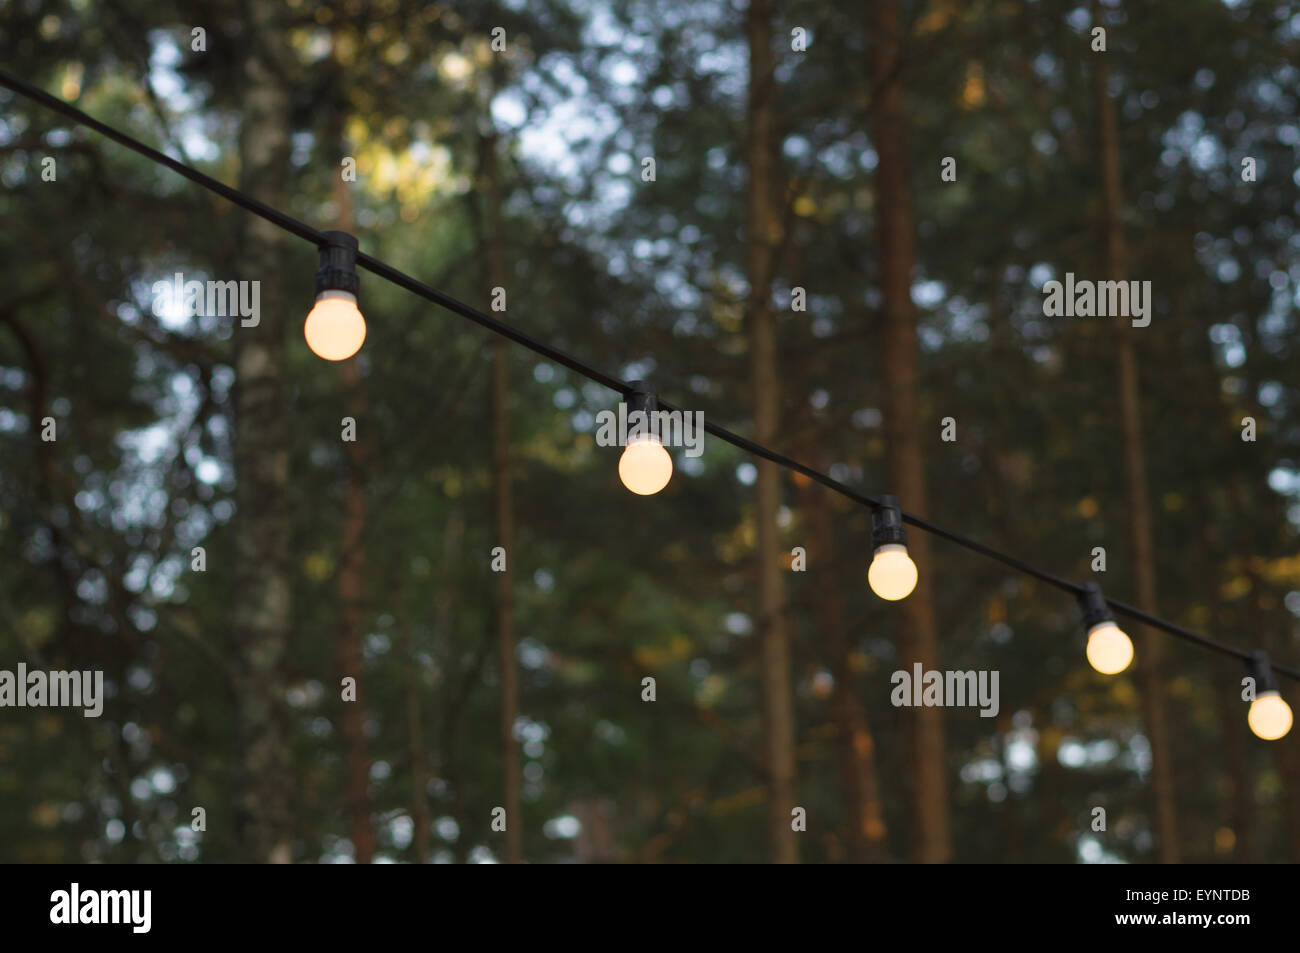 Bulbs On A Wire Stock Photos Images Alamy Lightbulb Learning Wiring Light Against Wood Blurred Background Image